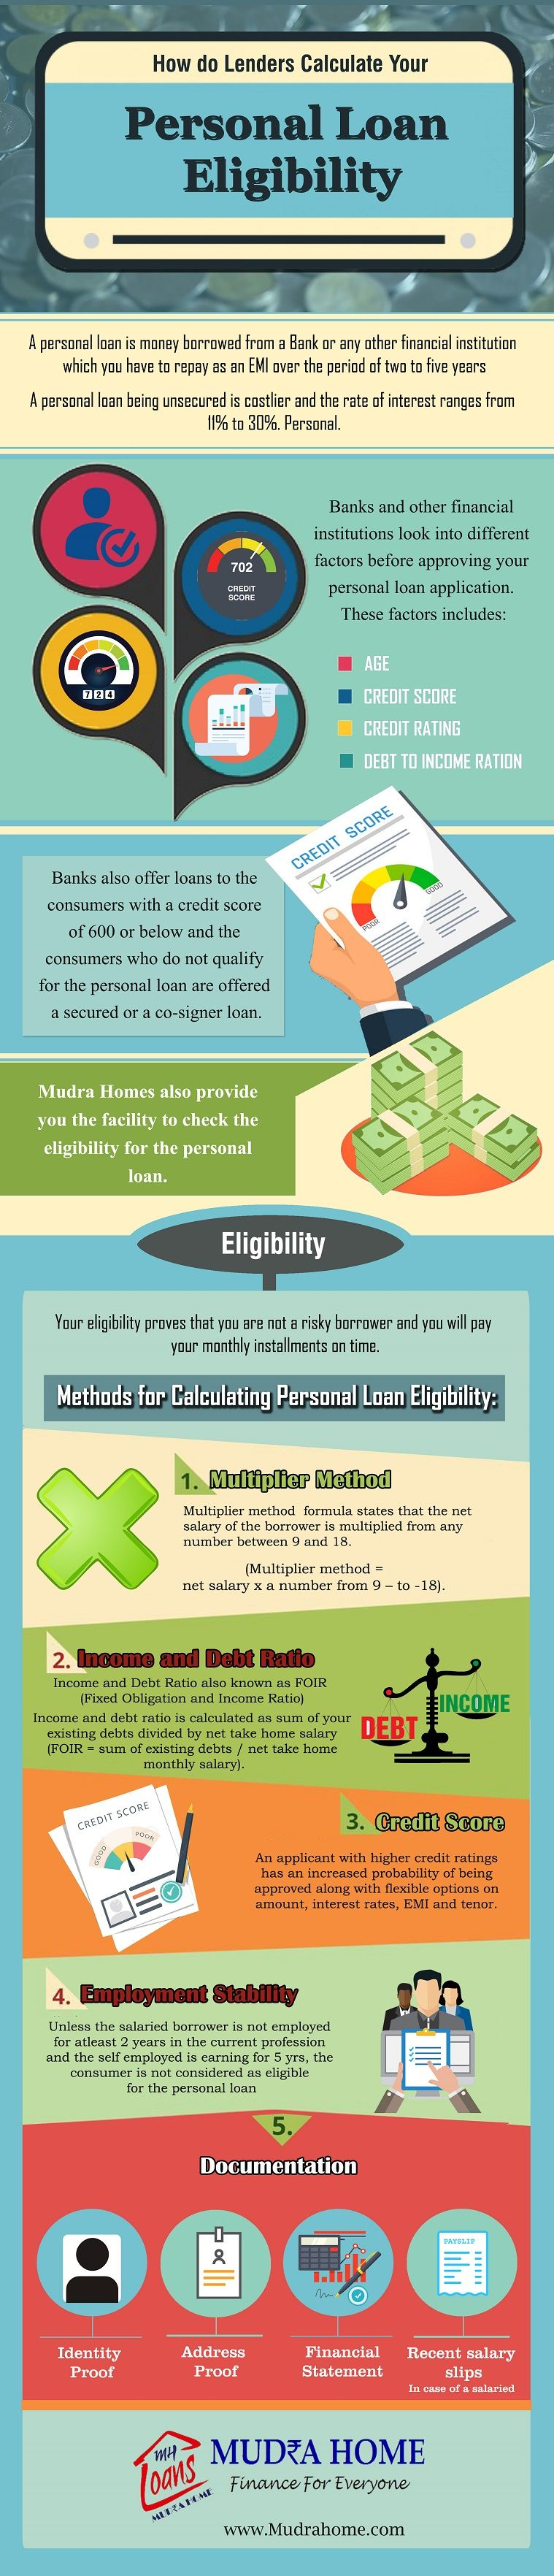 How Do Lenders Calculate Your Personal Loan Eligibility Personal Loans Lenders Loan